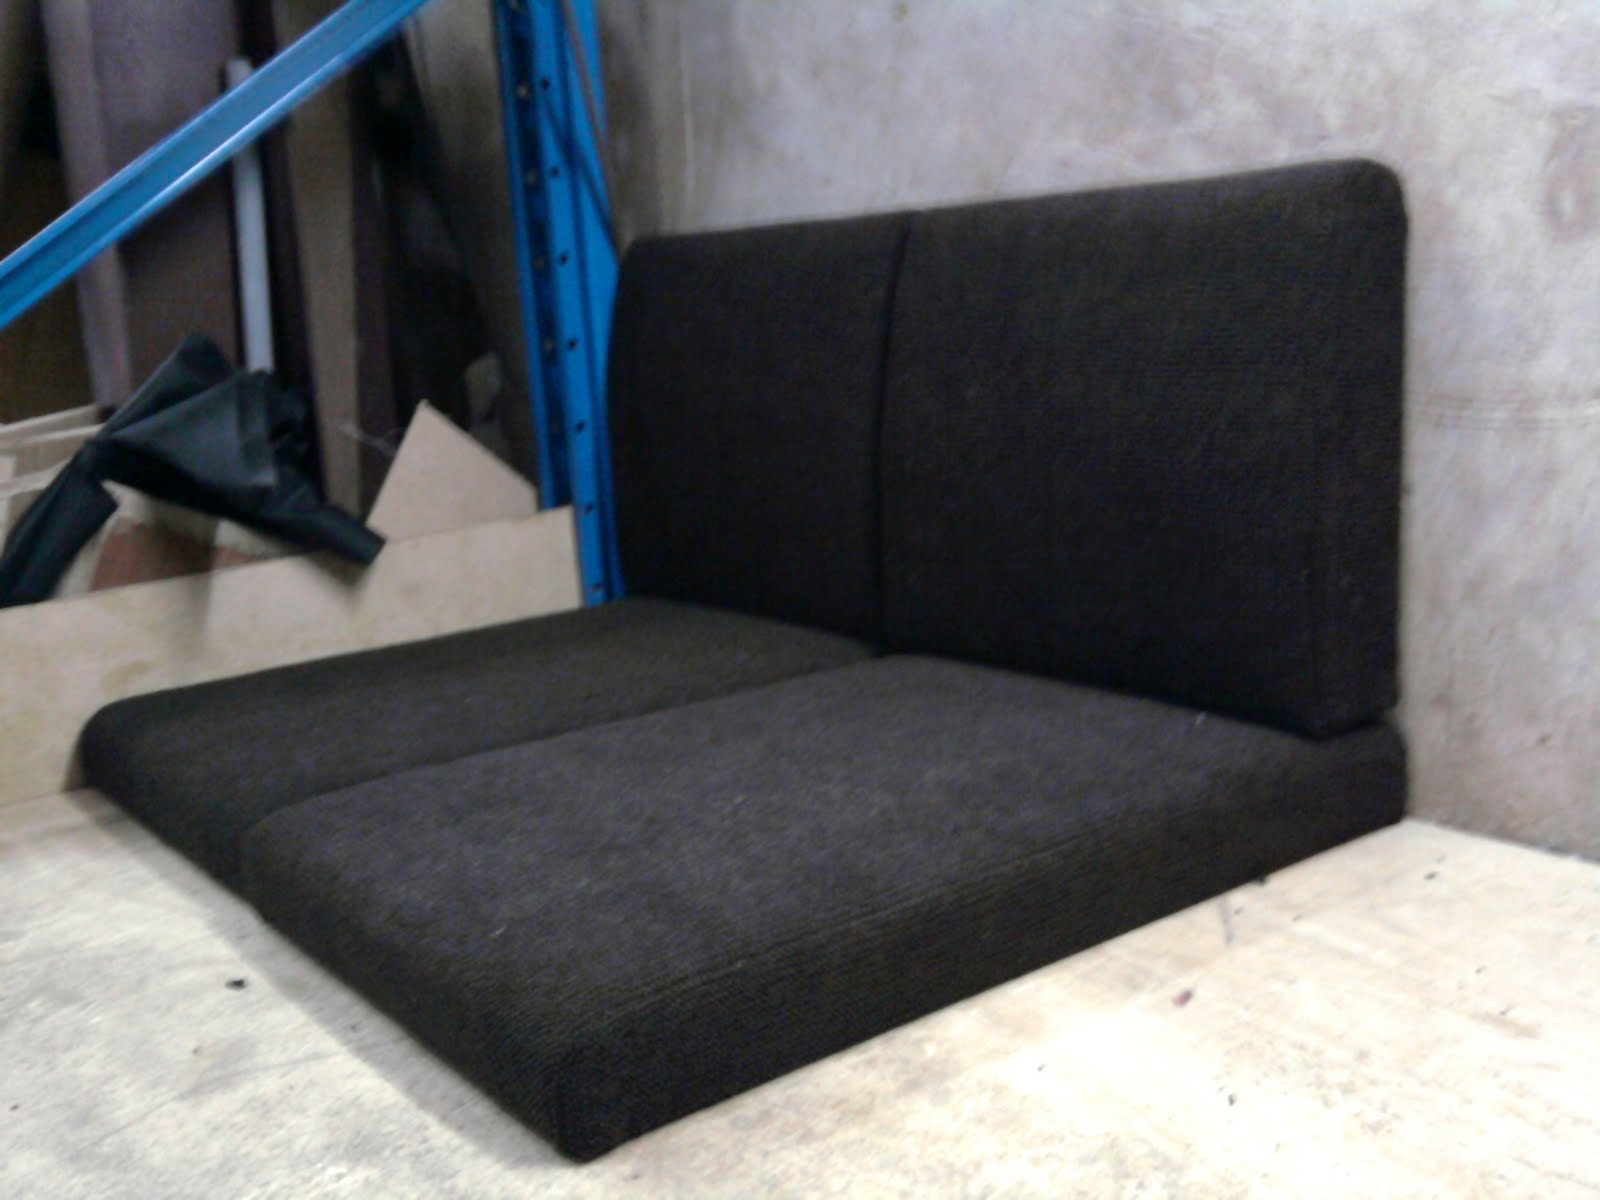 Respray Leather Sofa Hartman Bentley Rattan Corner Kia Meng Trading Products And Services August 2010